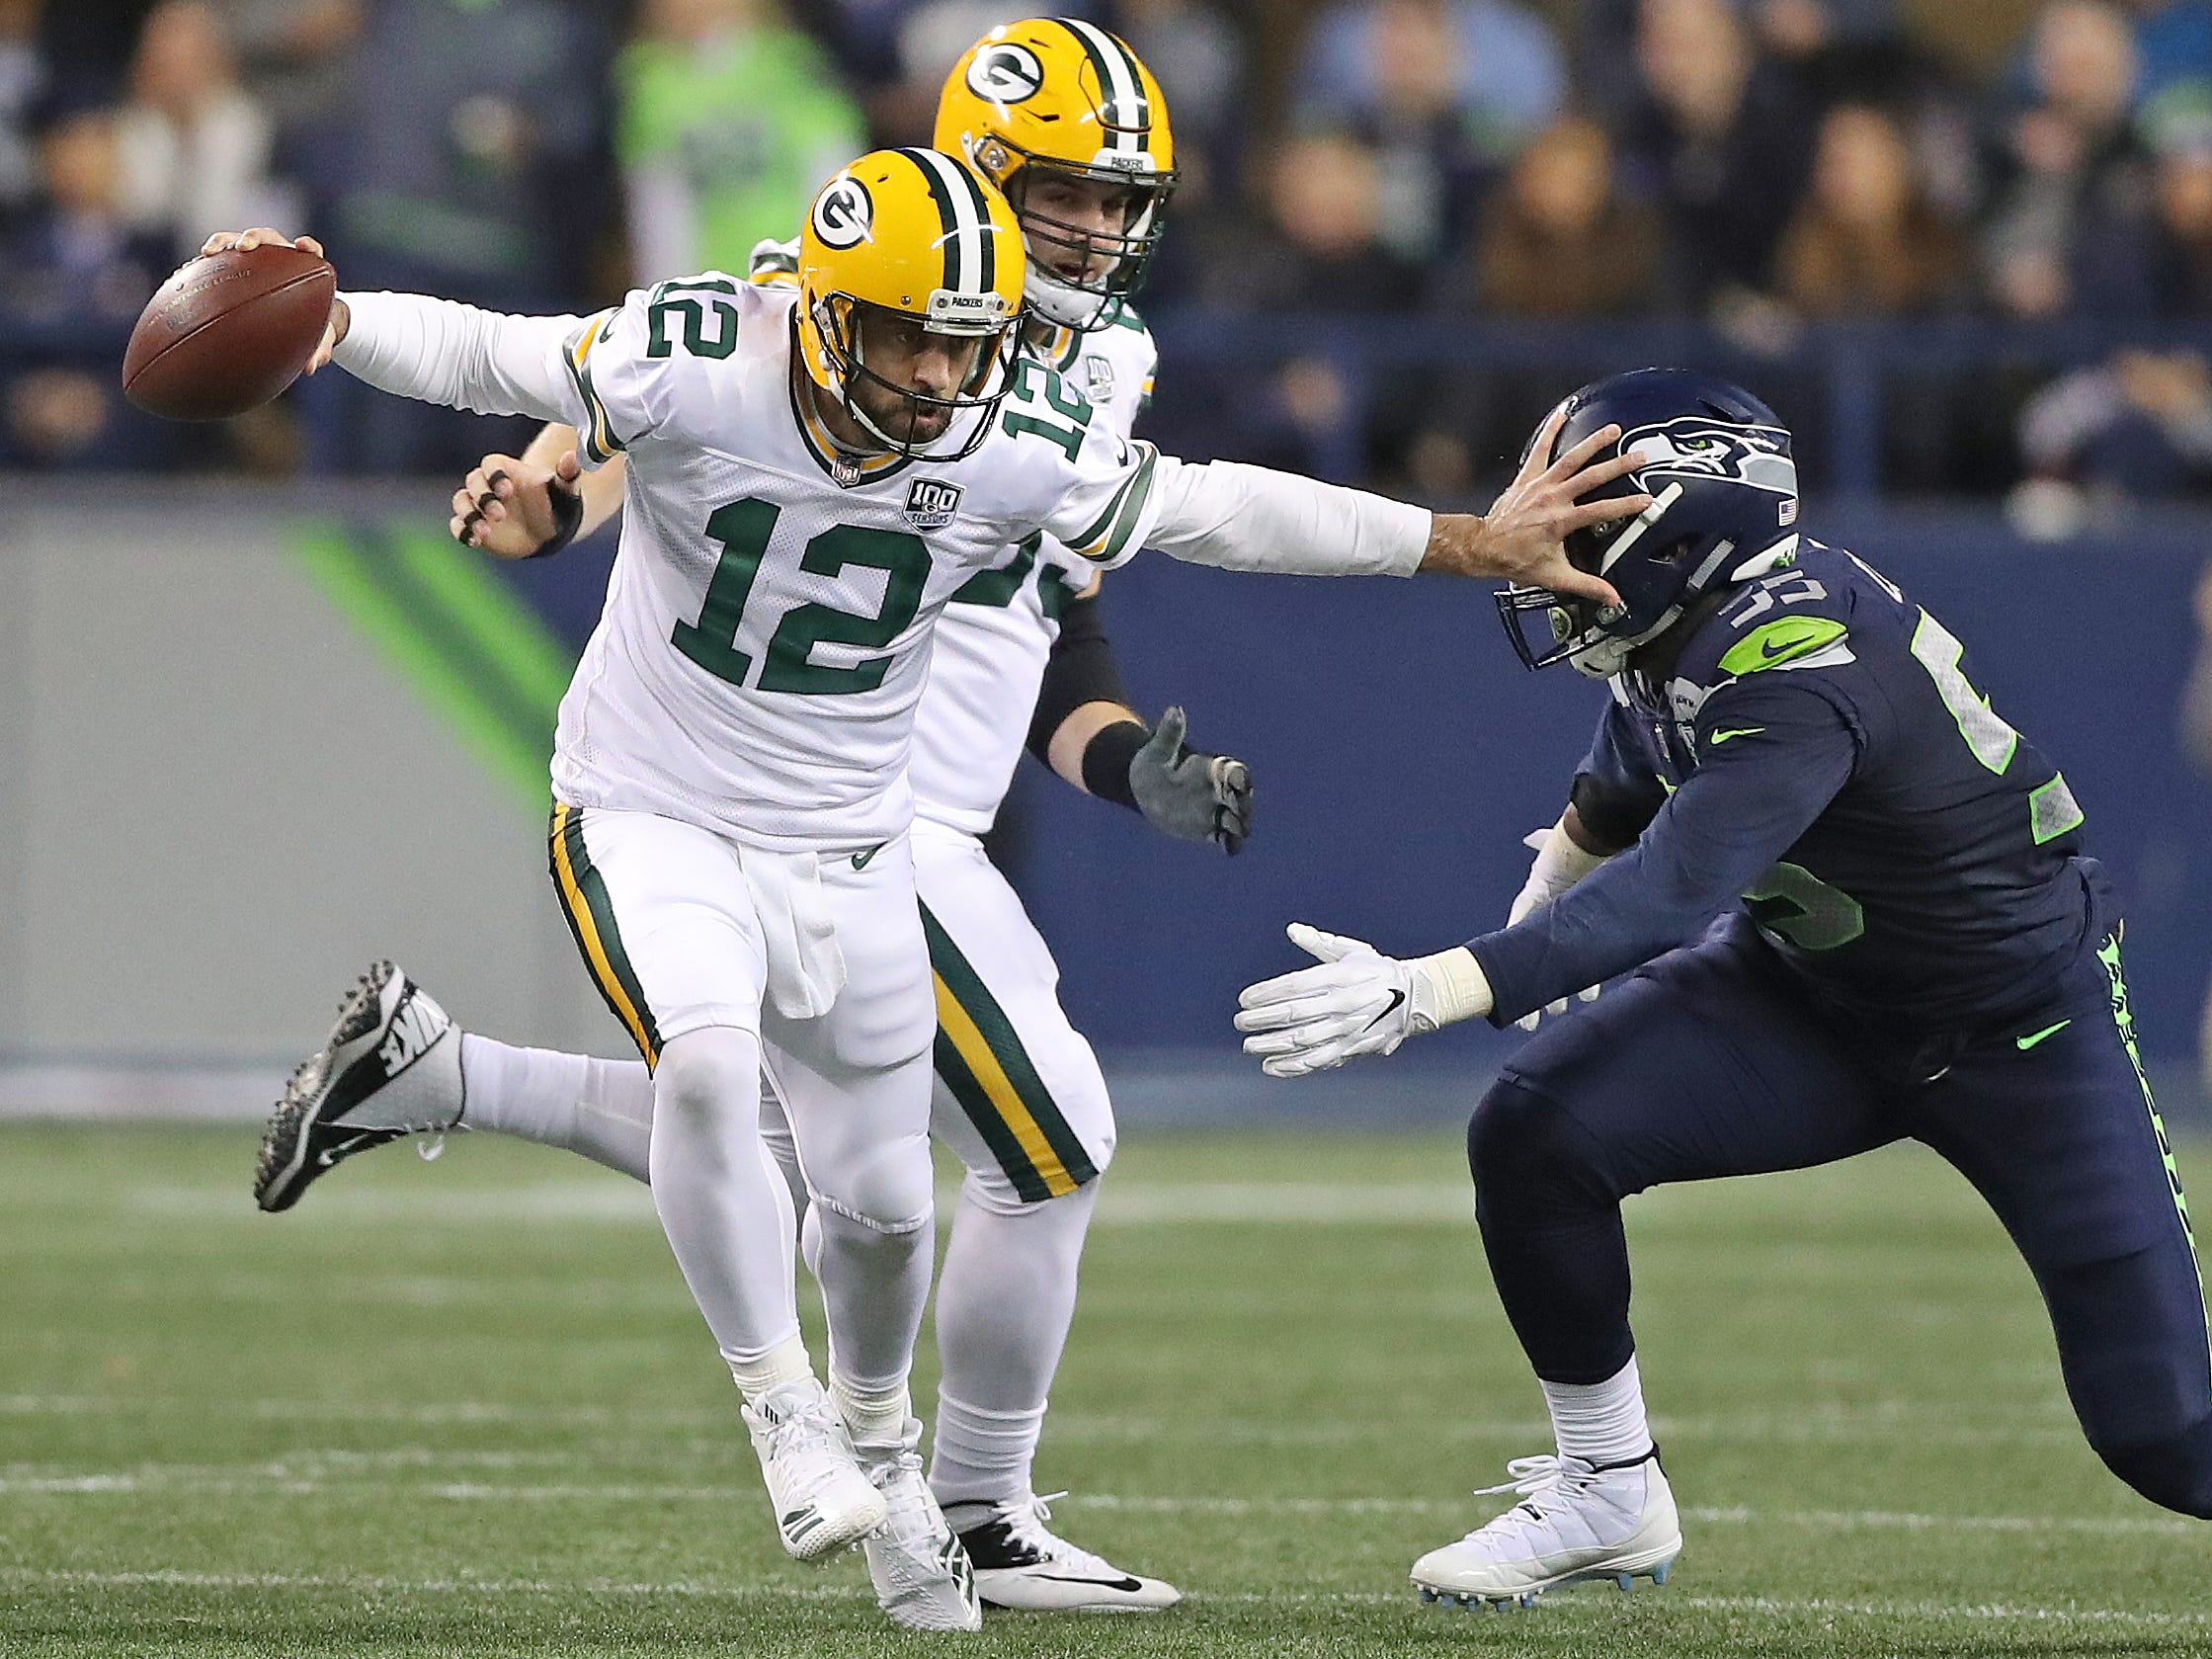 Green Bay Packers quarterback Aaron Rodgers (12) fends off a tackler against the Seattle Seahawks at CenturyLink Field Thursday, November 15, 2018 in Seattle, WA. Jim Matthews/USA TODAY NETWORK-Wis